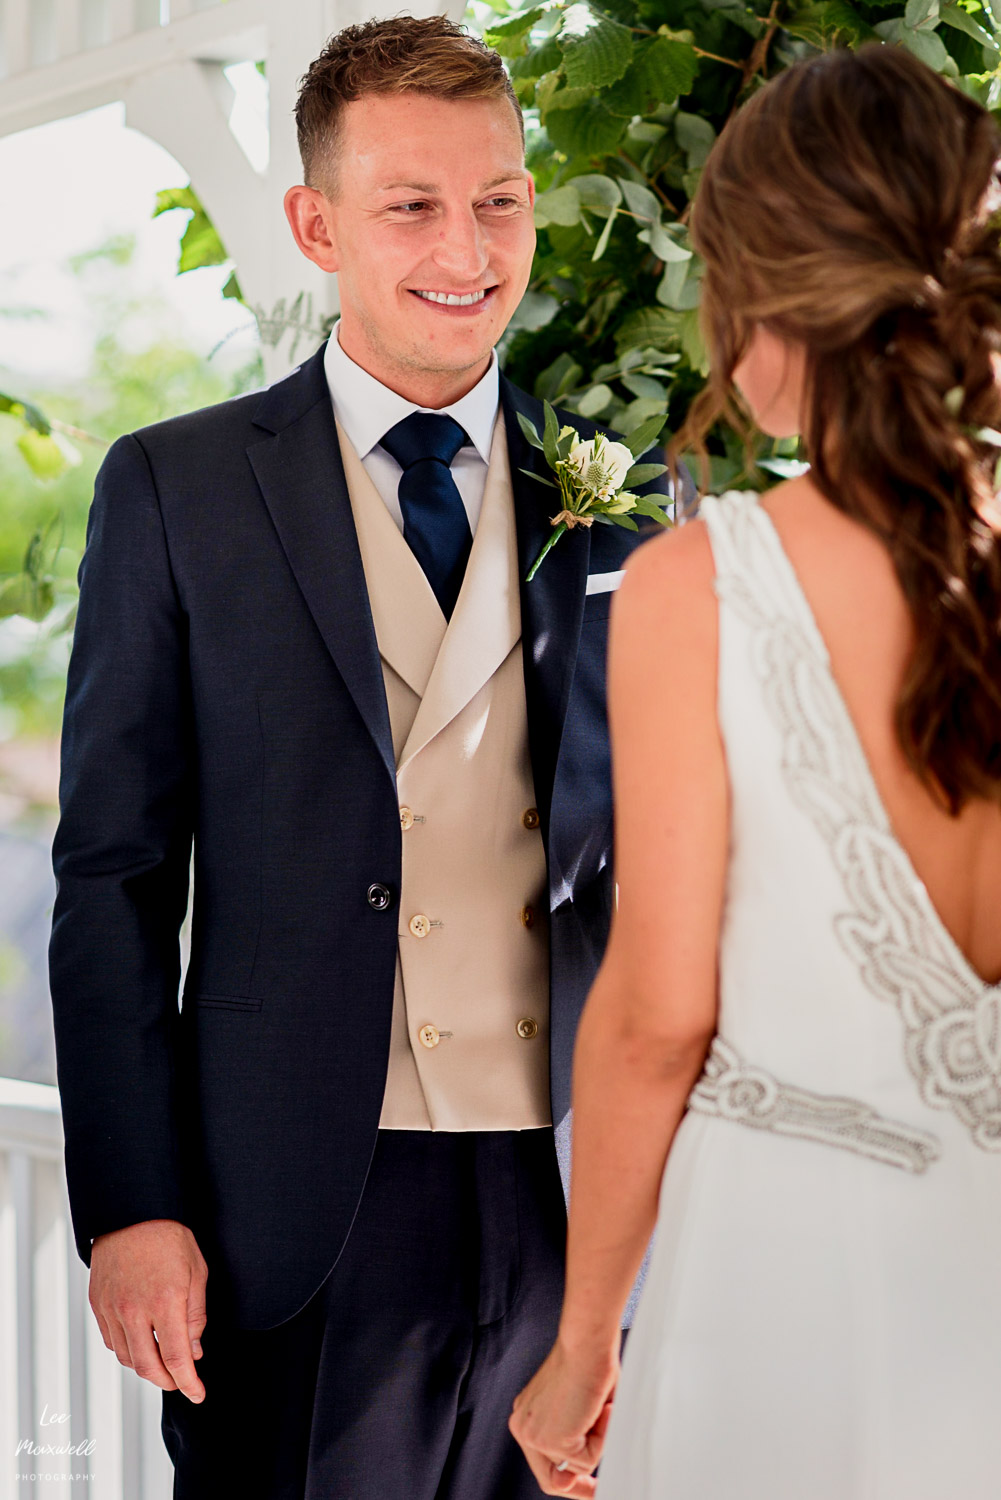 Smiling groom in ceremony